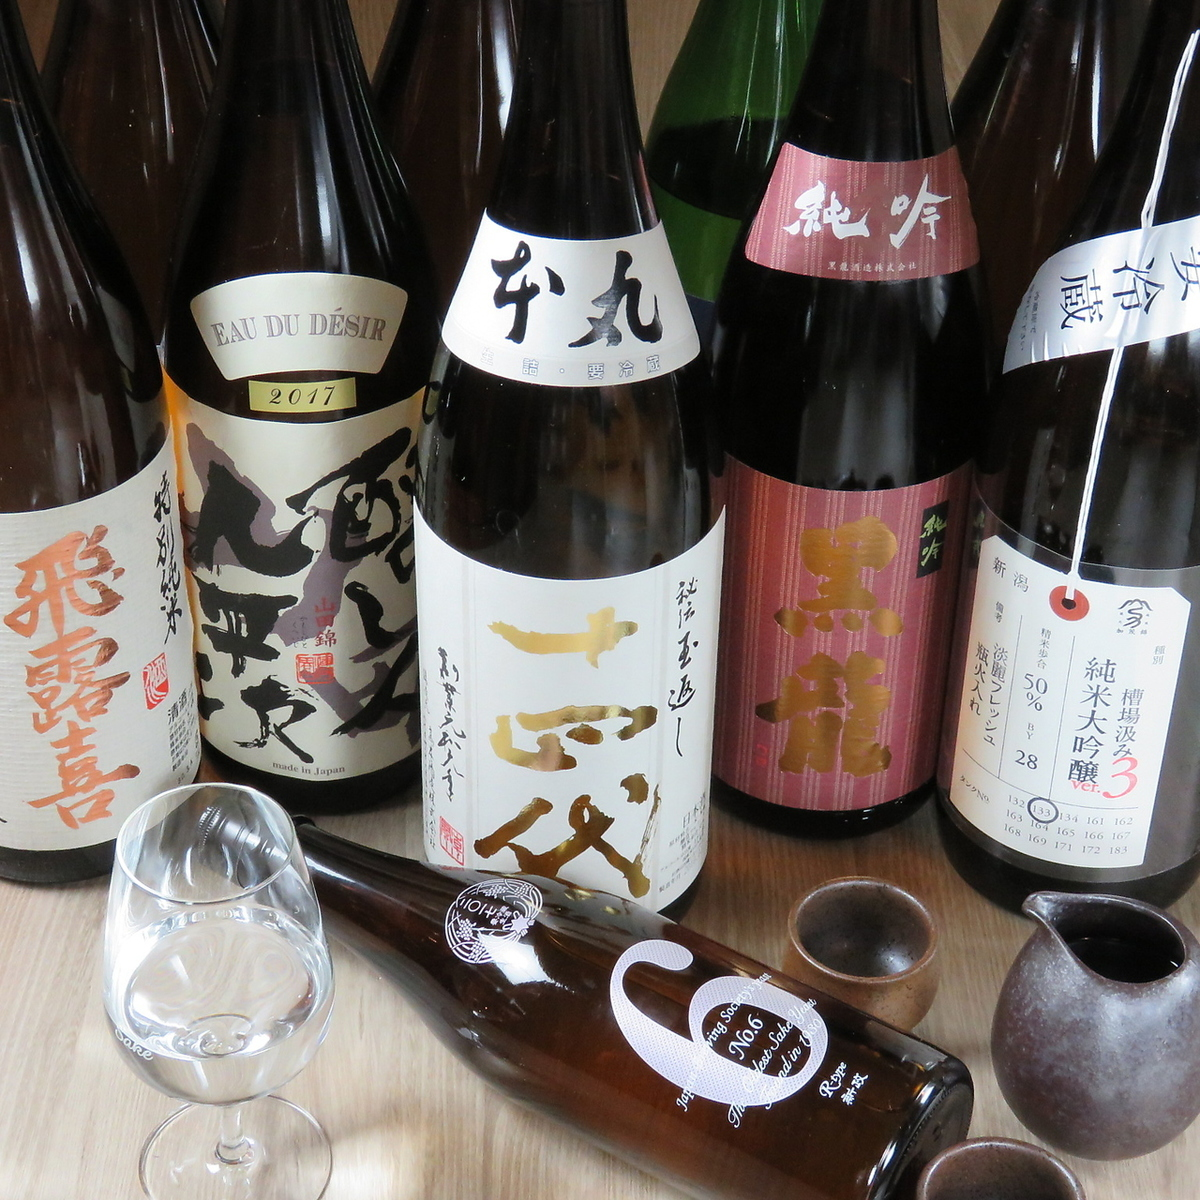 A lot of authentic sake brought from all over the country.